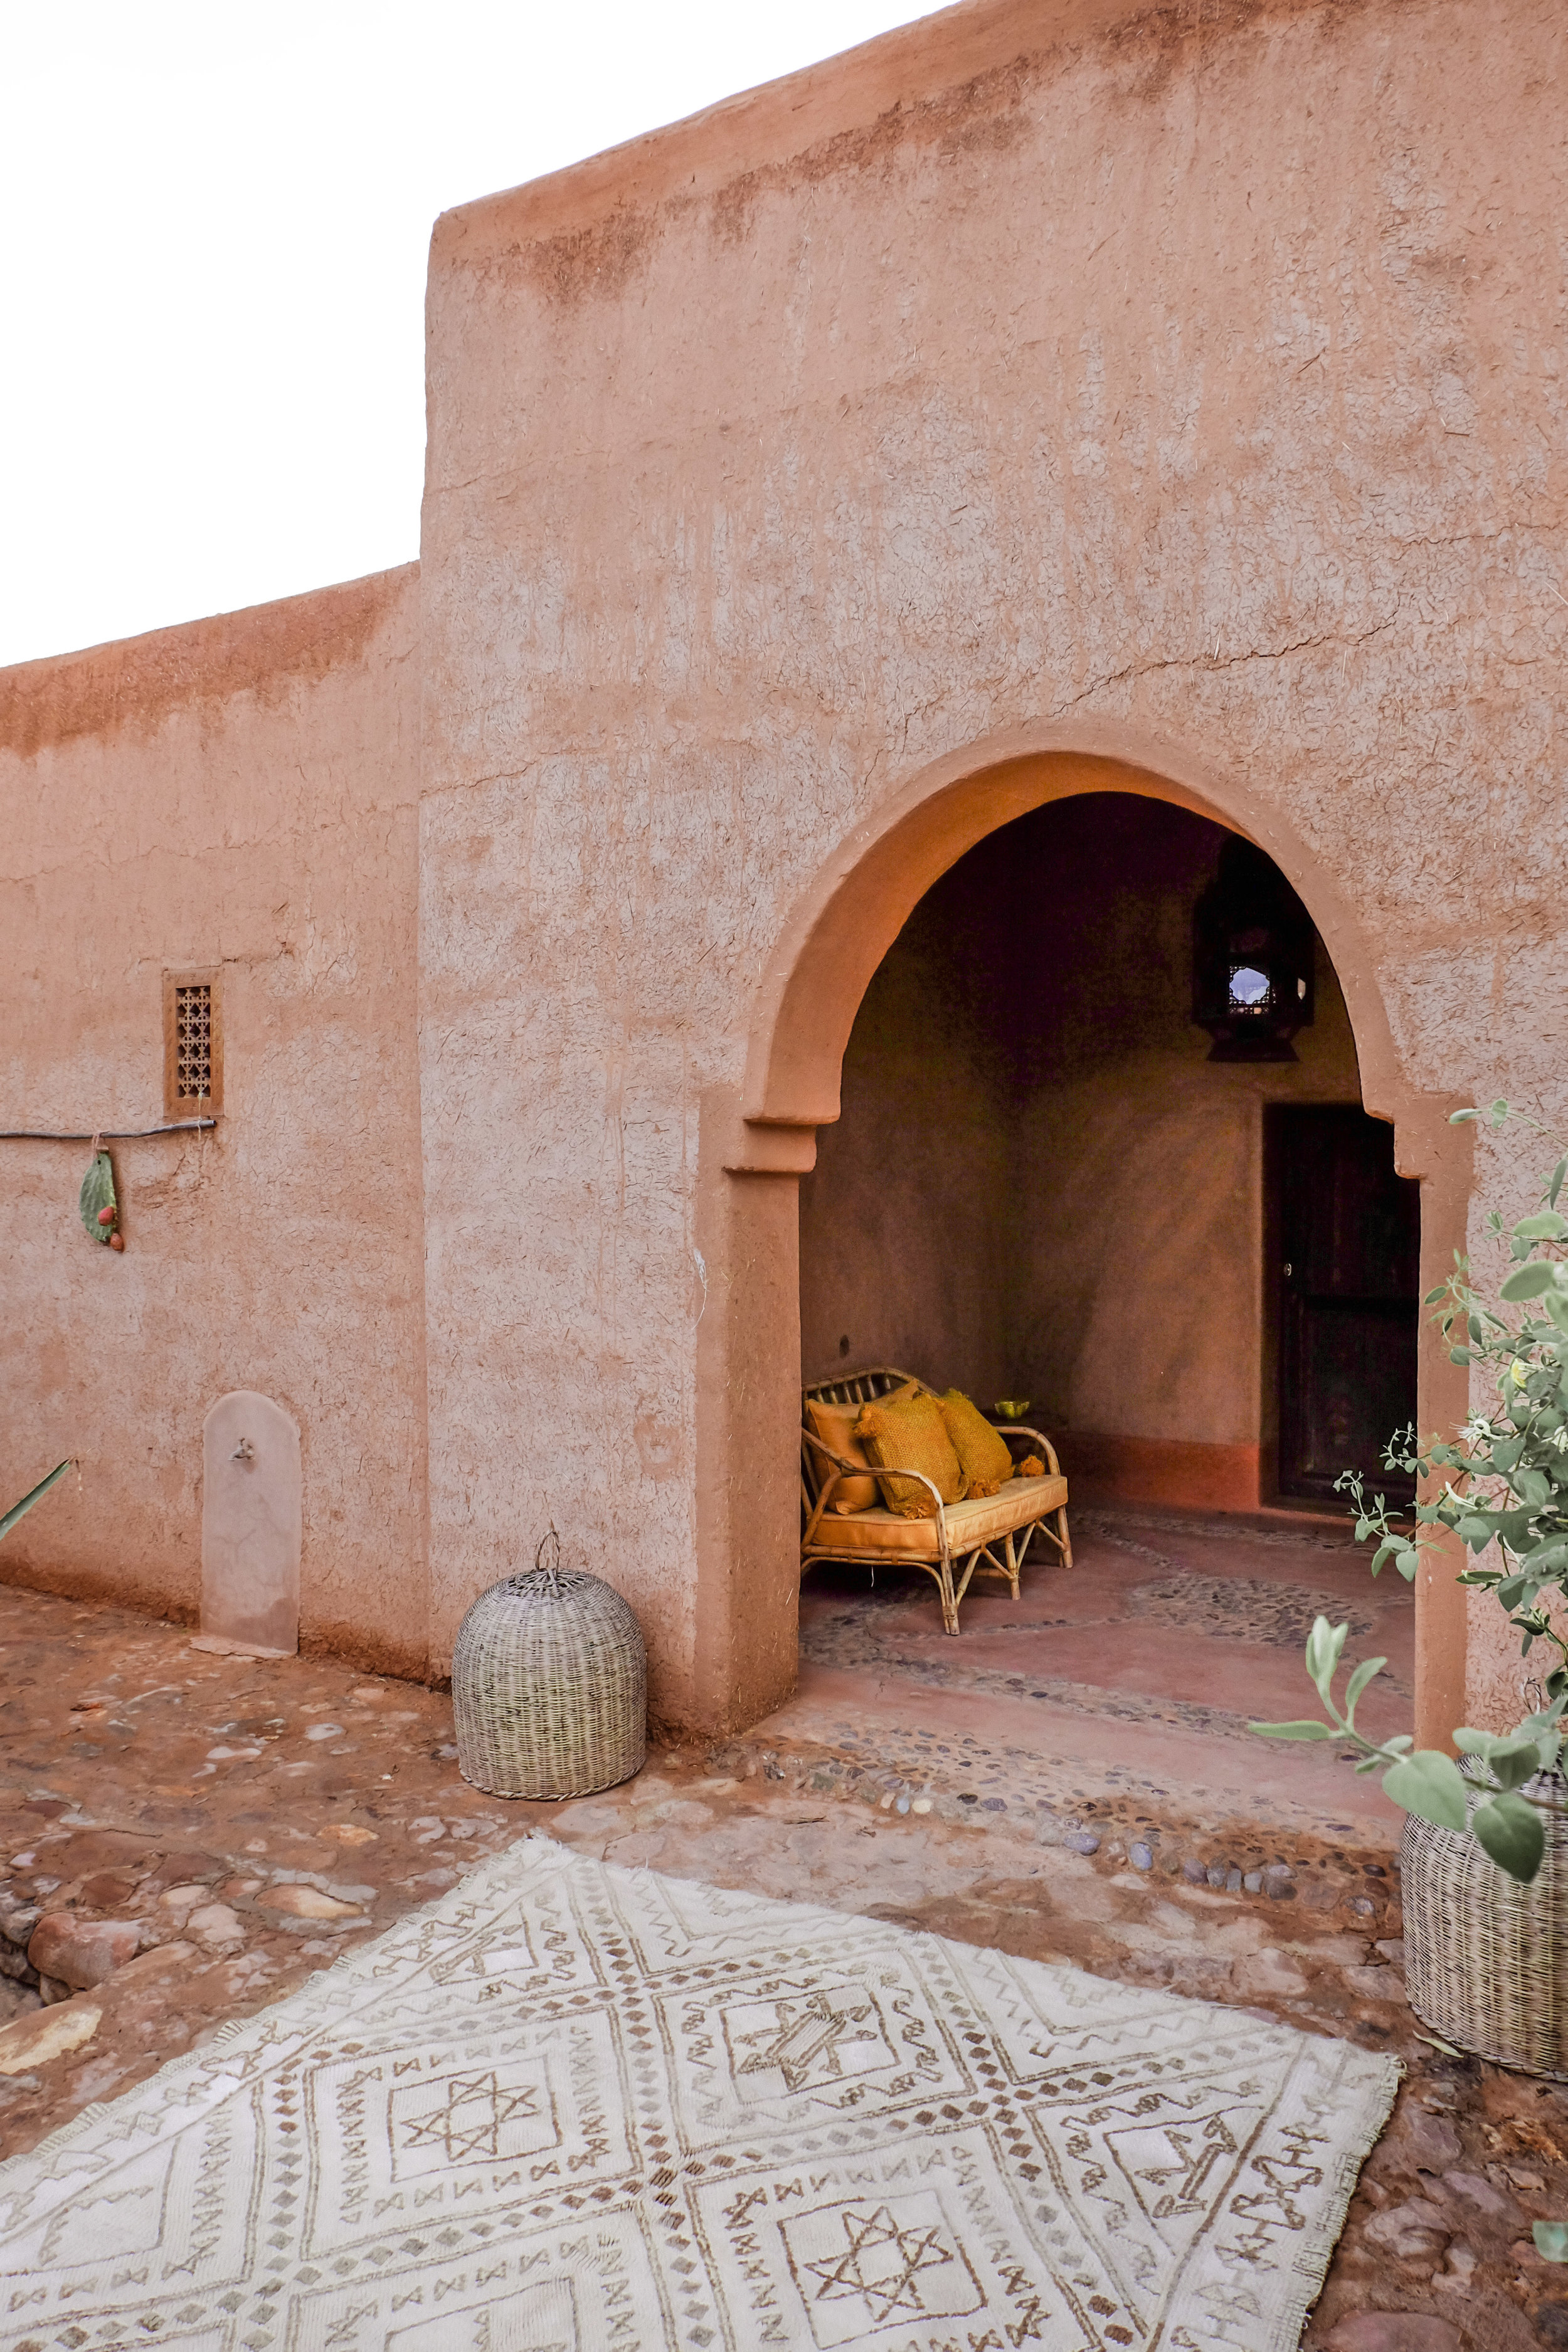 Credit: all Photos by Daisy Sophia, Styled by Badr Echariti, Designed by Amy Elad, taken at Berber Lodge Marrakech